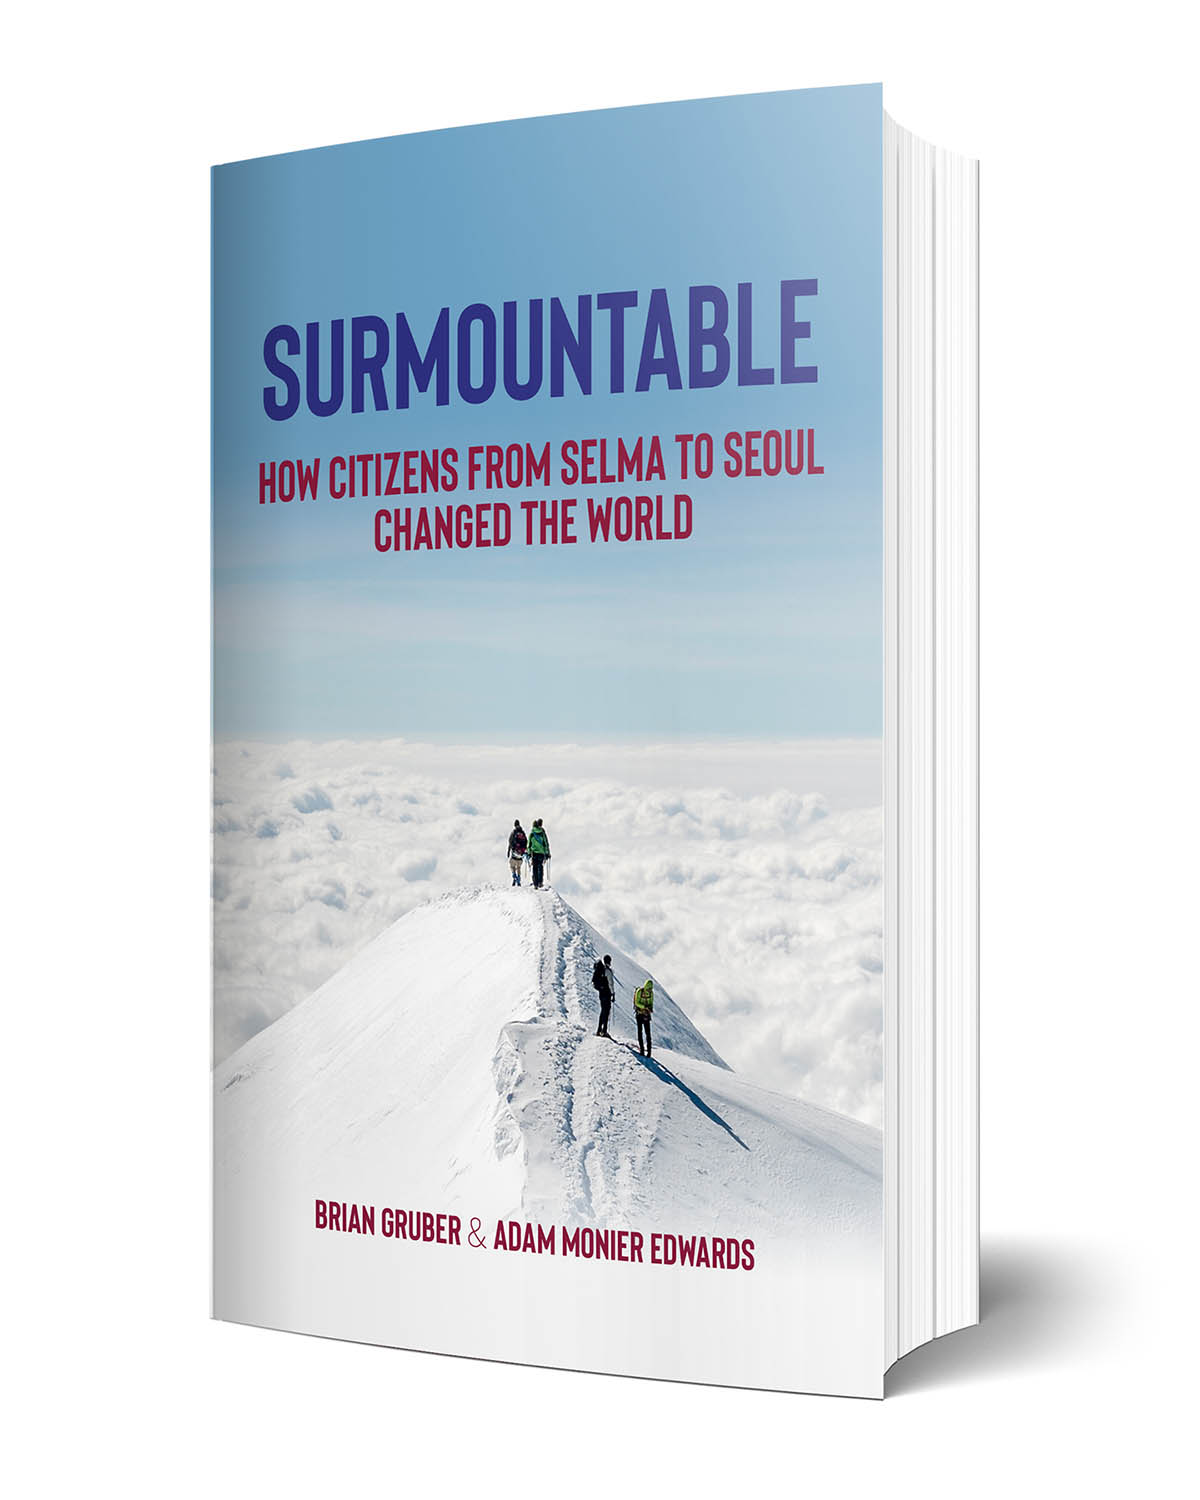 Surmountable book by Adam Monier Edwards and Brian Gruber